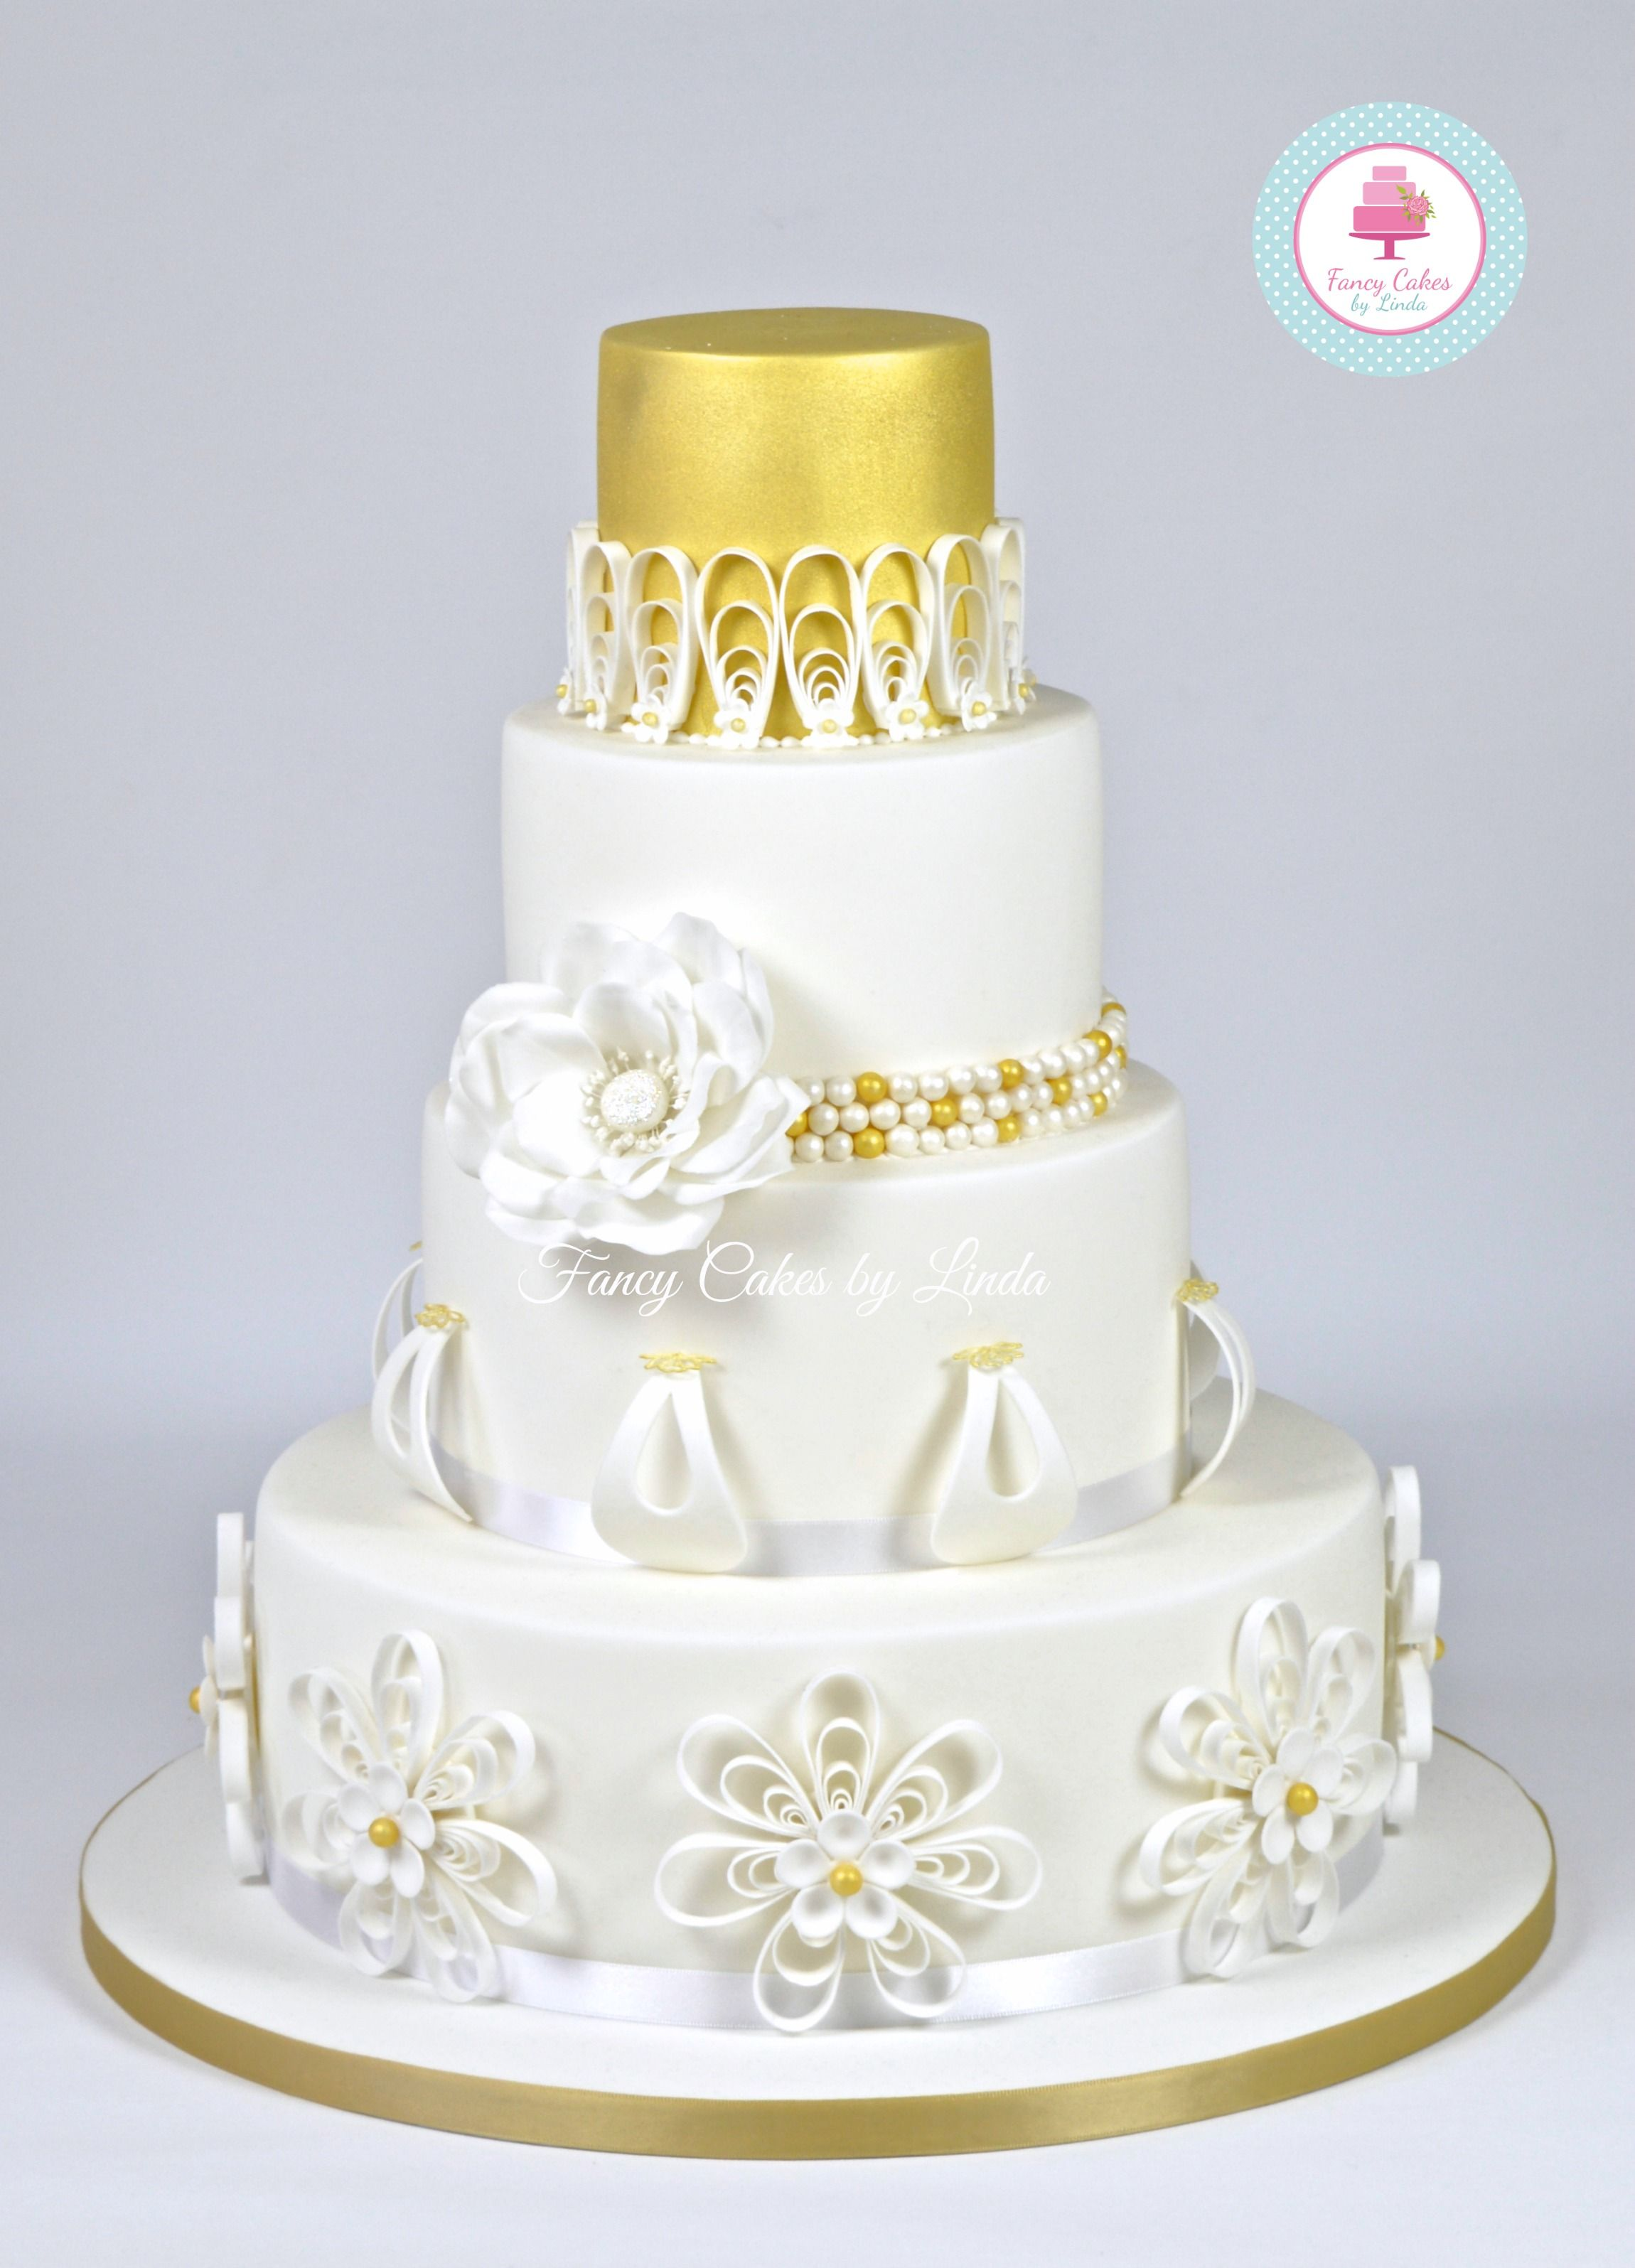 Gold & White Quilling Wedding Cake 07917815712 www.facebook.com ...